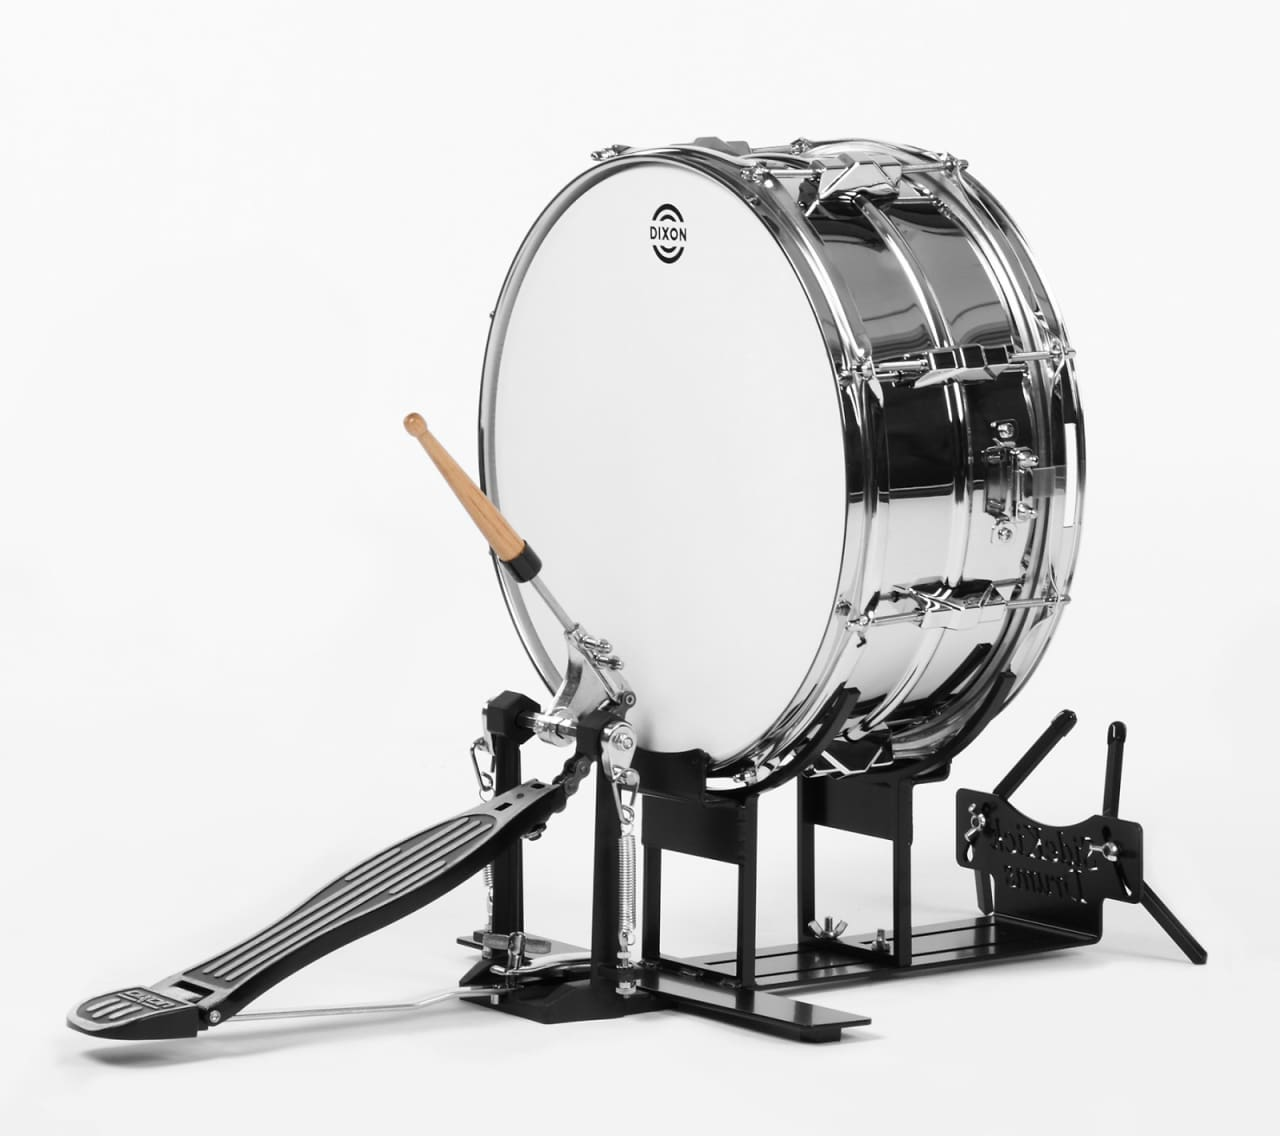 Foot Operated Snare Drum Kit By Side Kick Drums | Reverb